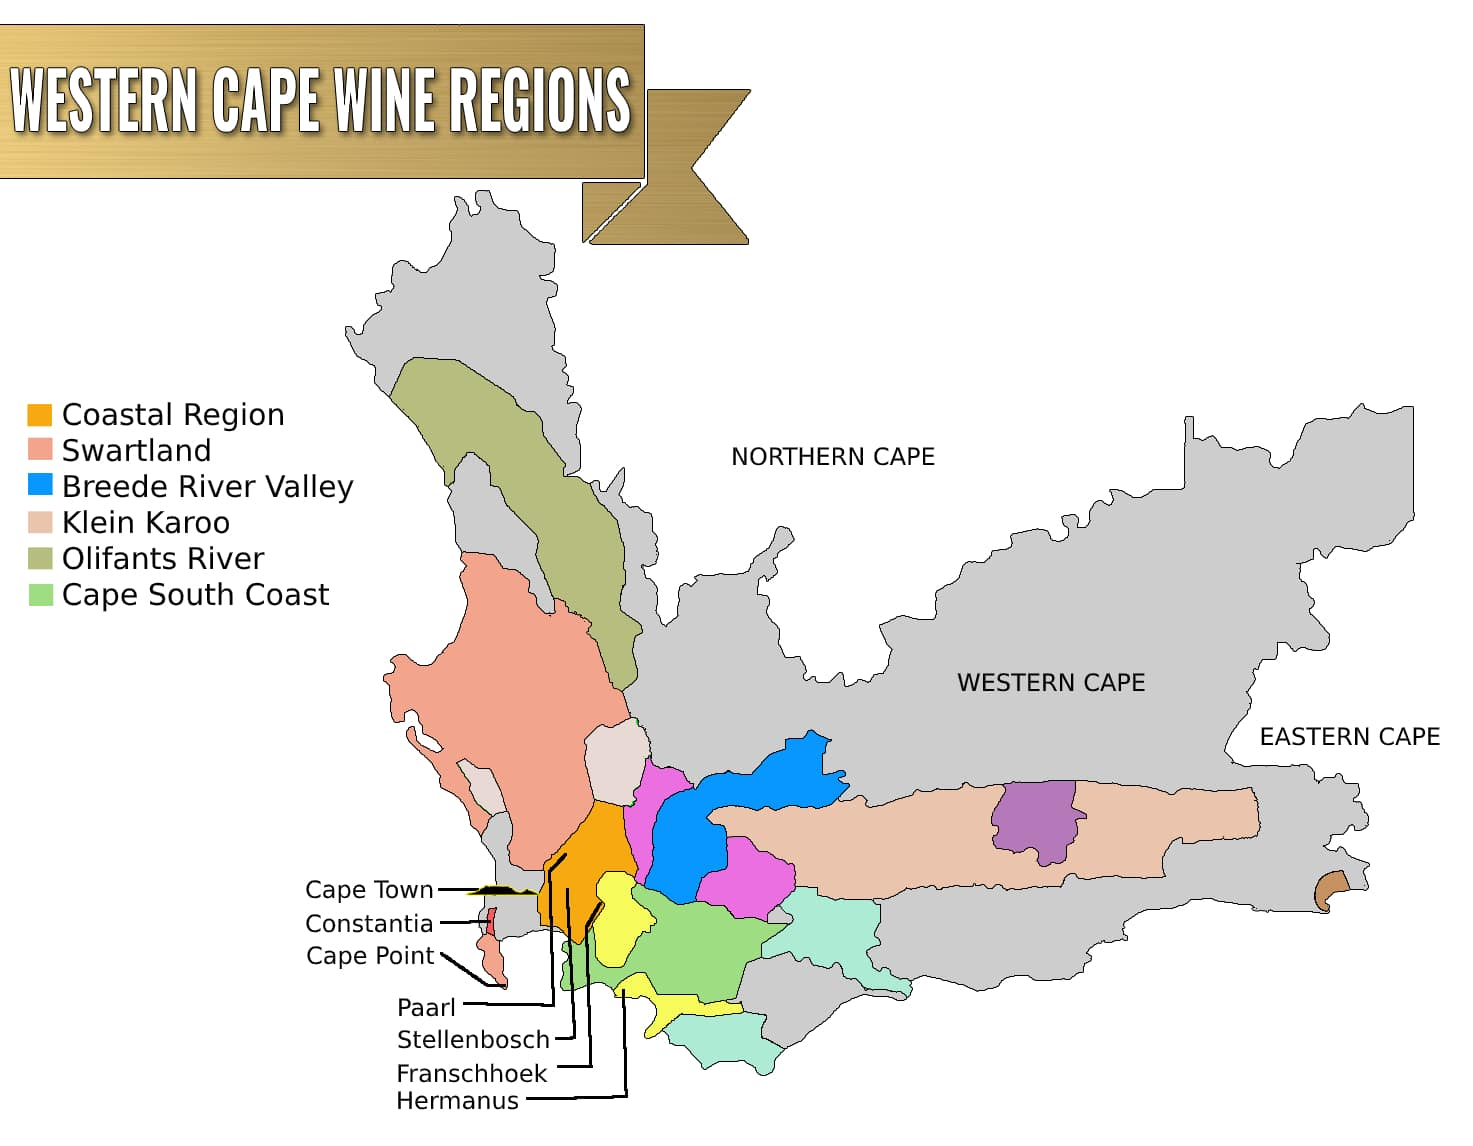 Wine regions in the Western Cape map